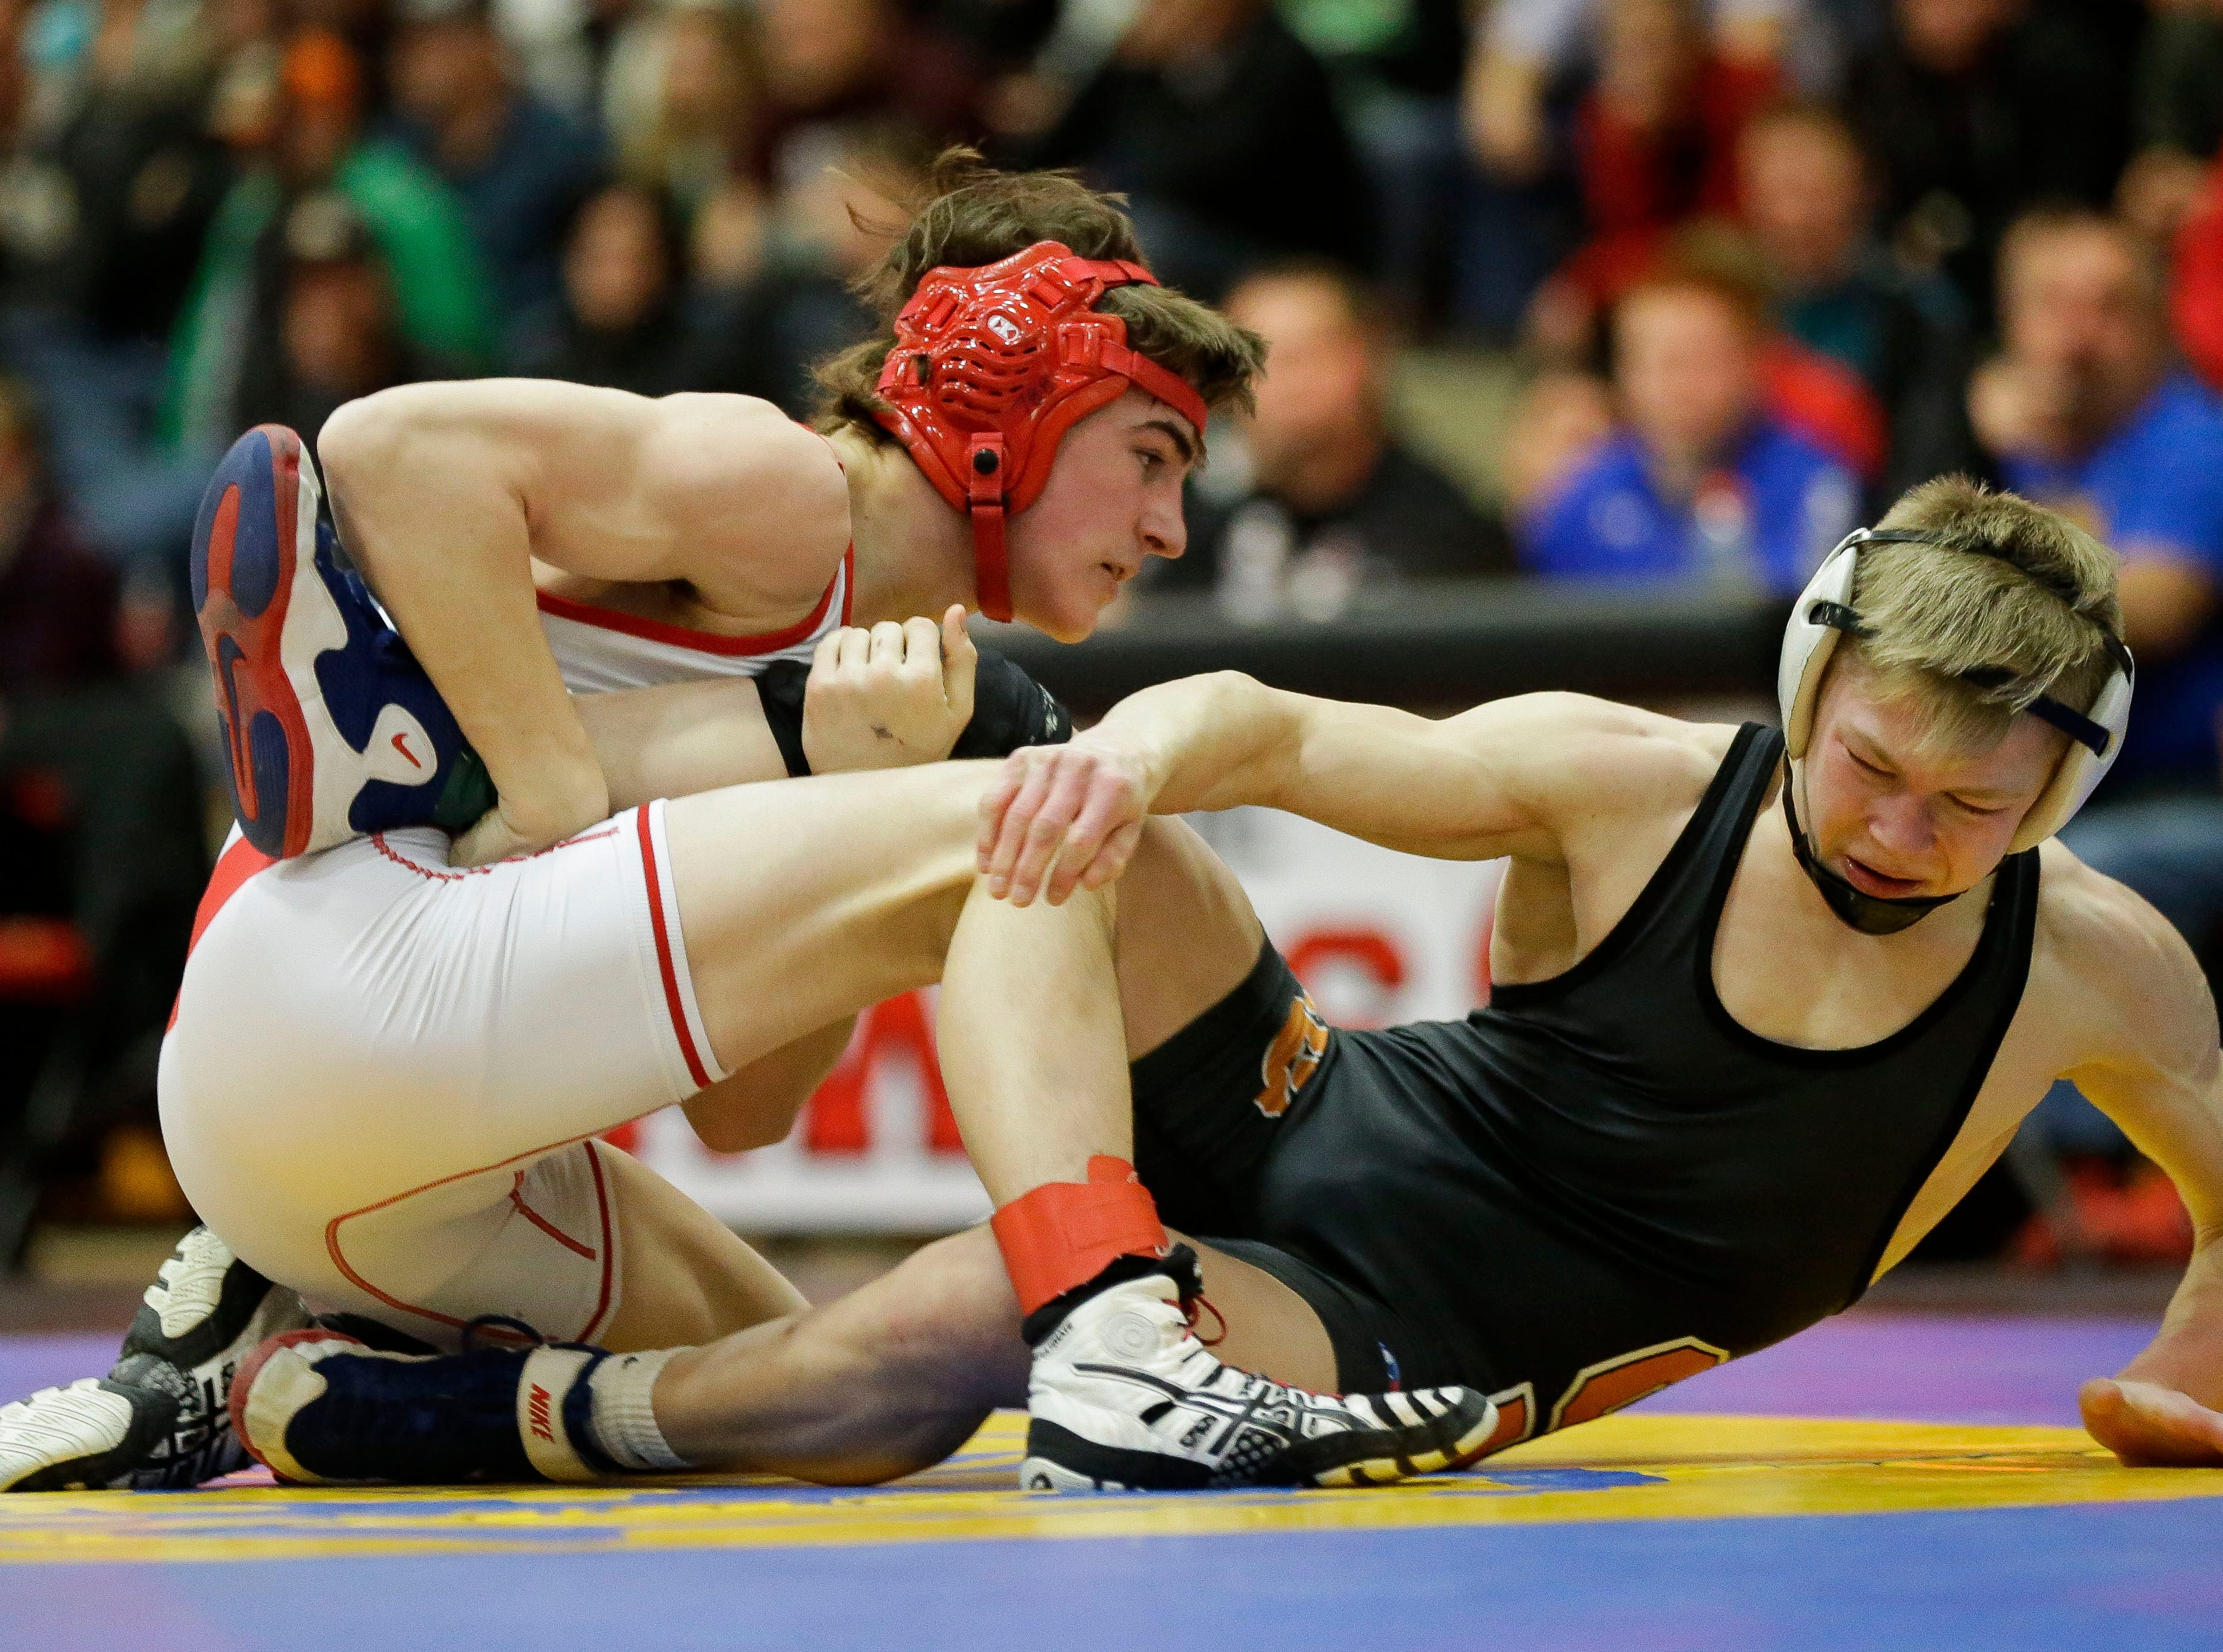 Weyauwega-Fremont's Cian Fischer wrestles against Stratford's Manny Drexler in a 120-pound championship match on Saturday, February 16, 2019, during a Division 3 sectional meet at Shawano High School in Shawano, Wis.